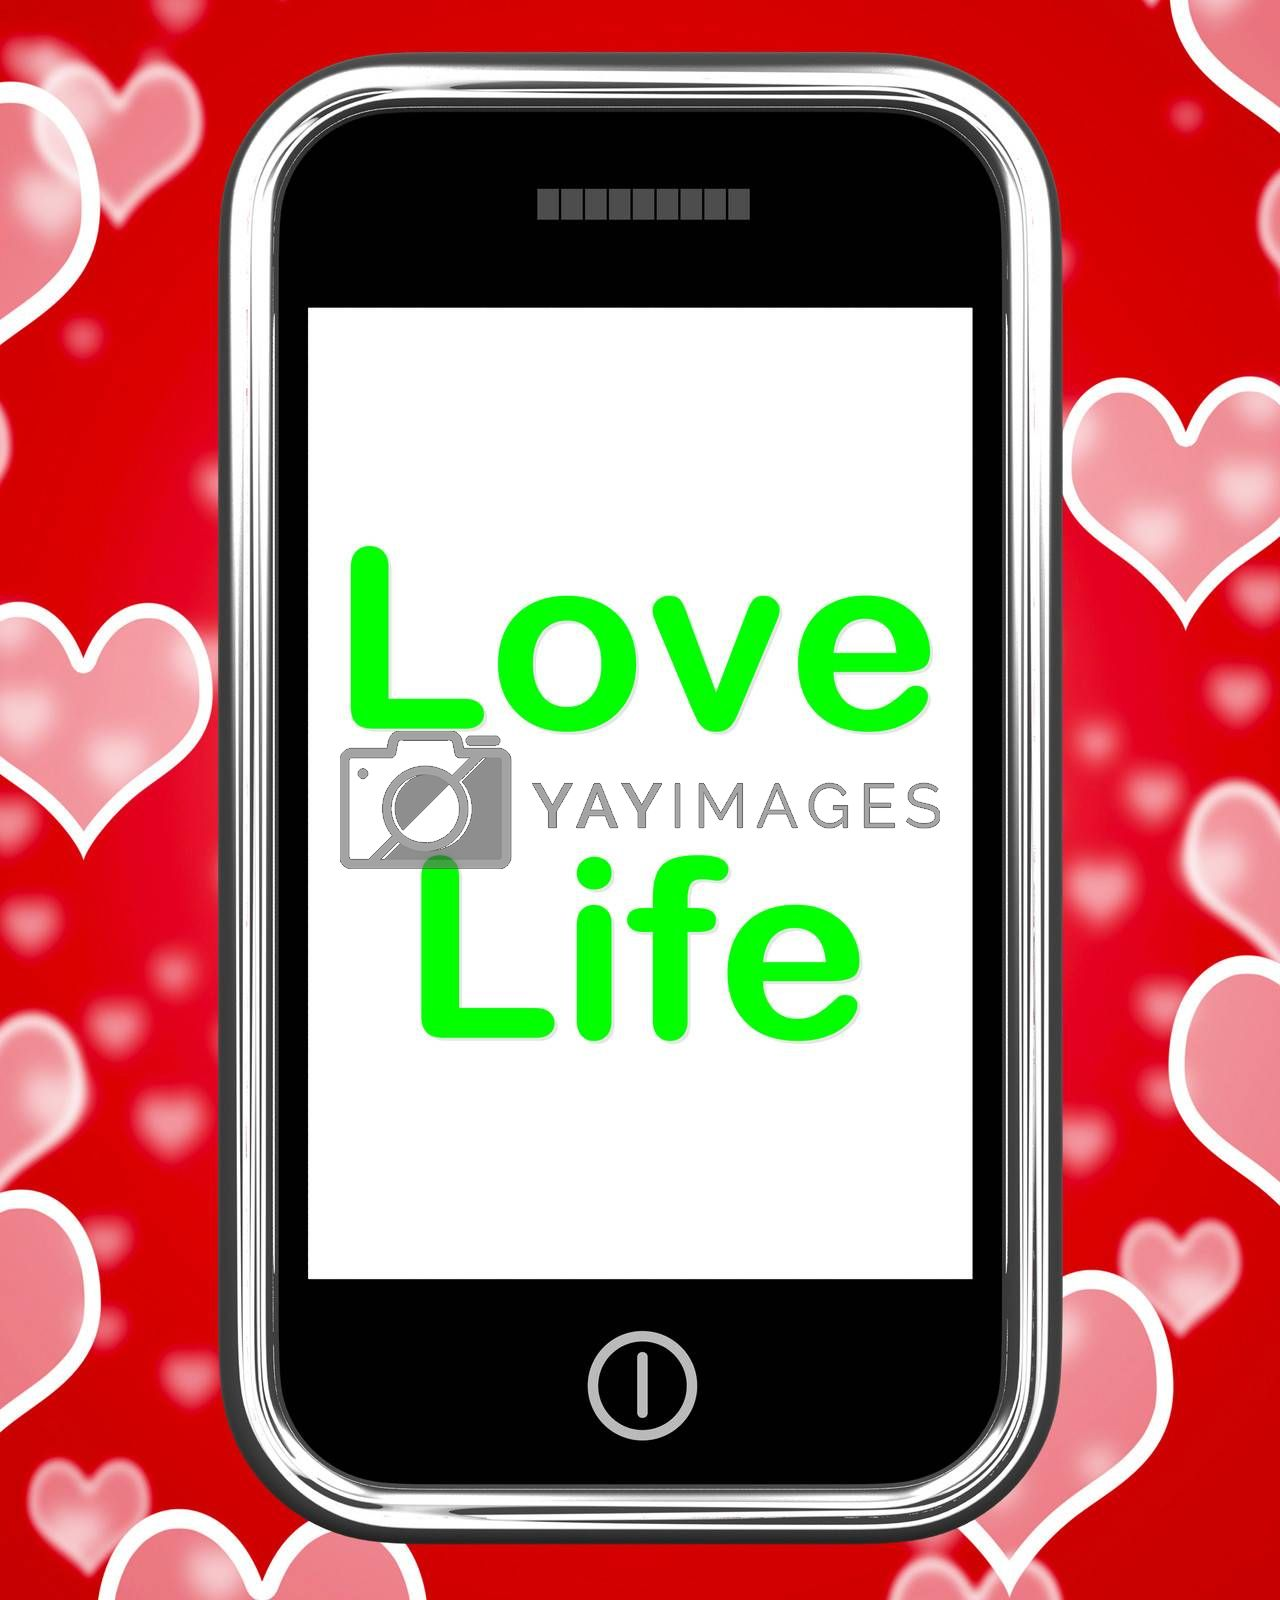 Love Life On Phone Showing Sex Romance Or Relationship